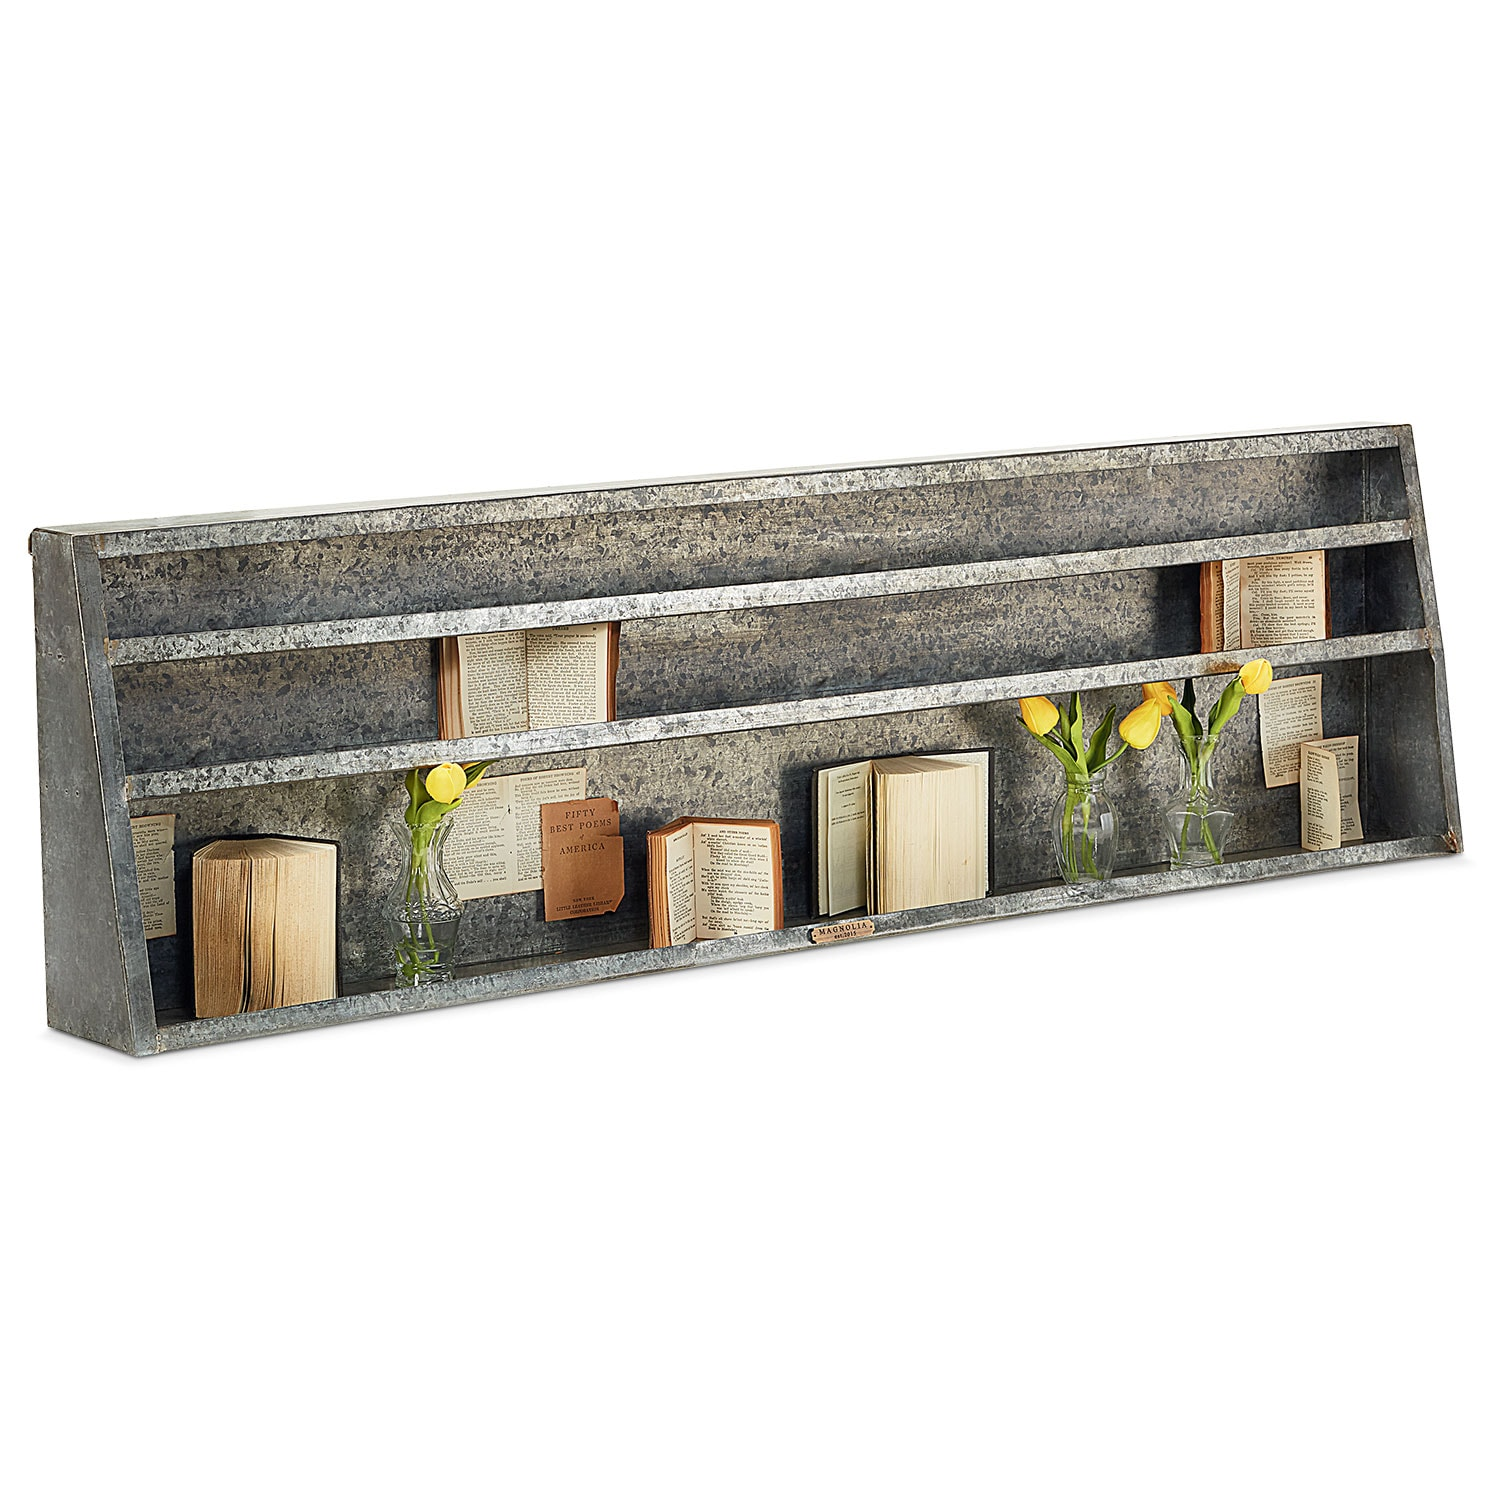 Home Accessories - Metal Wall Shelf